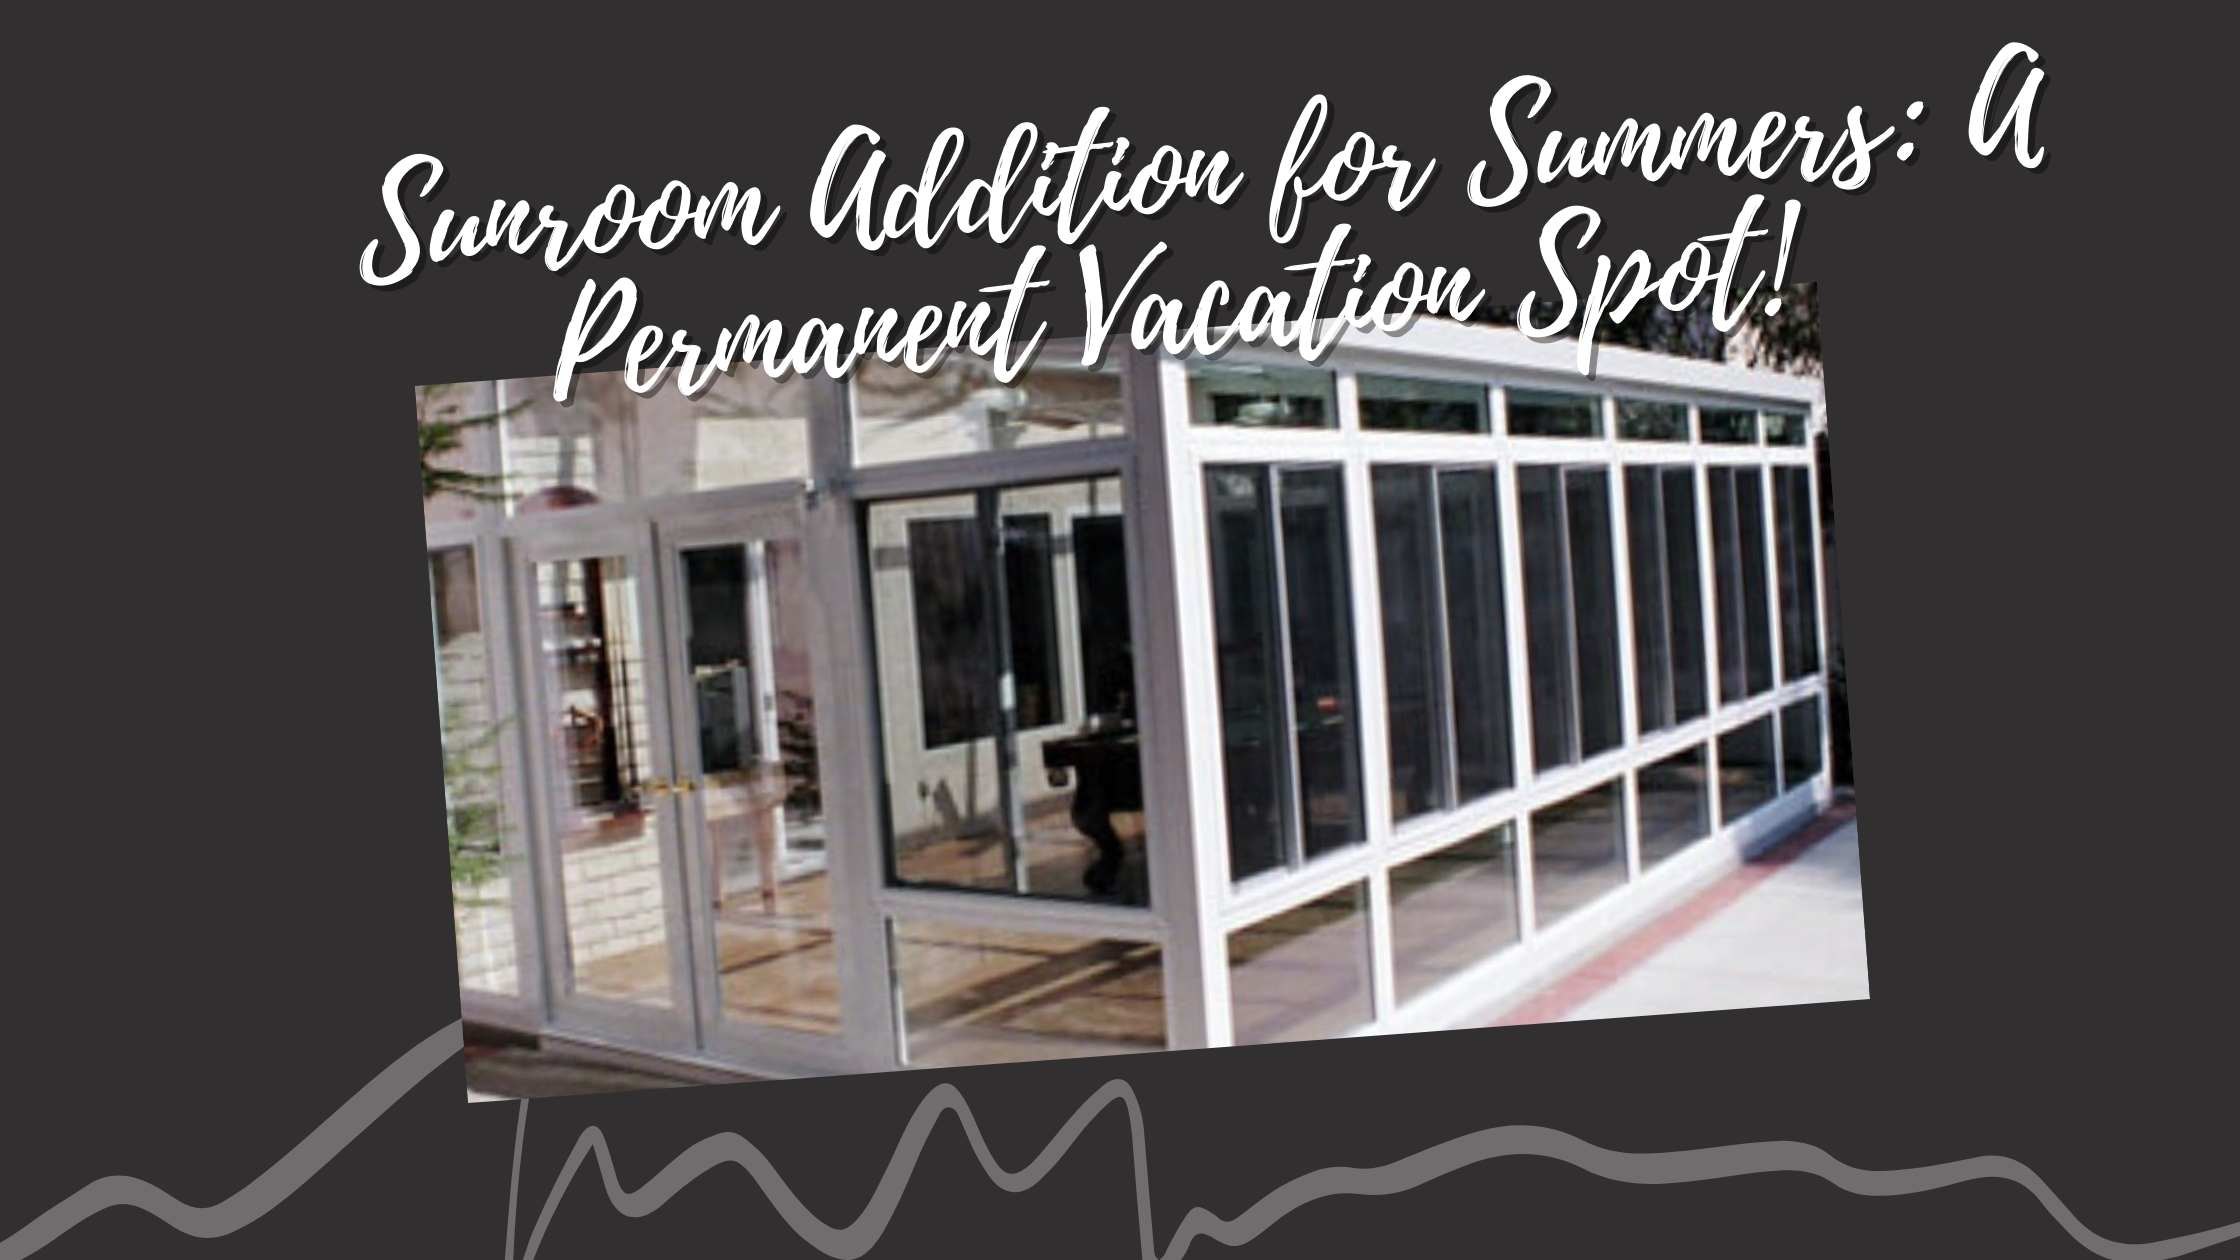 Sunroom Addition for Summers A Permanent Vacation Spot